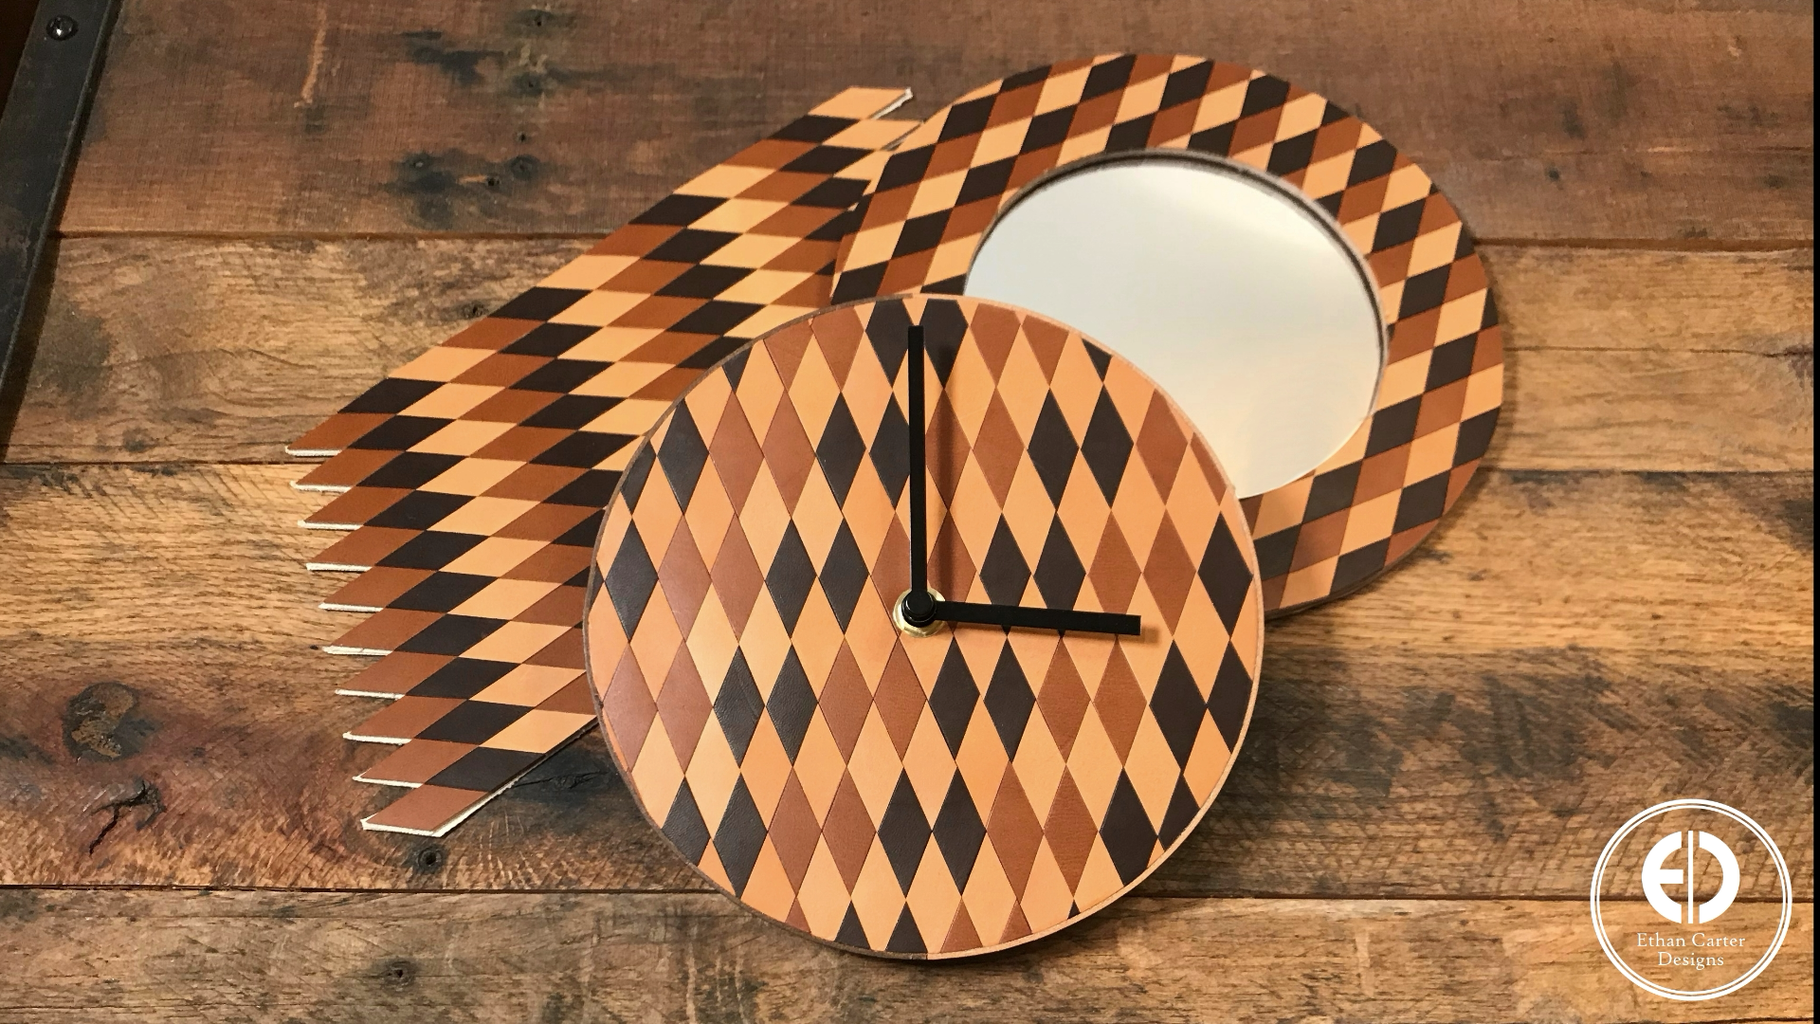 Making the Patterned Leather Mirror Frame